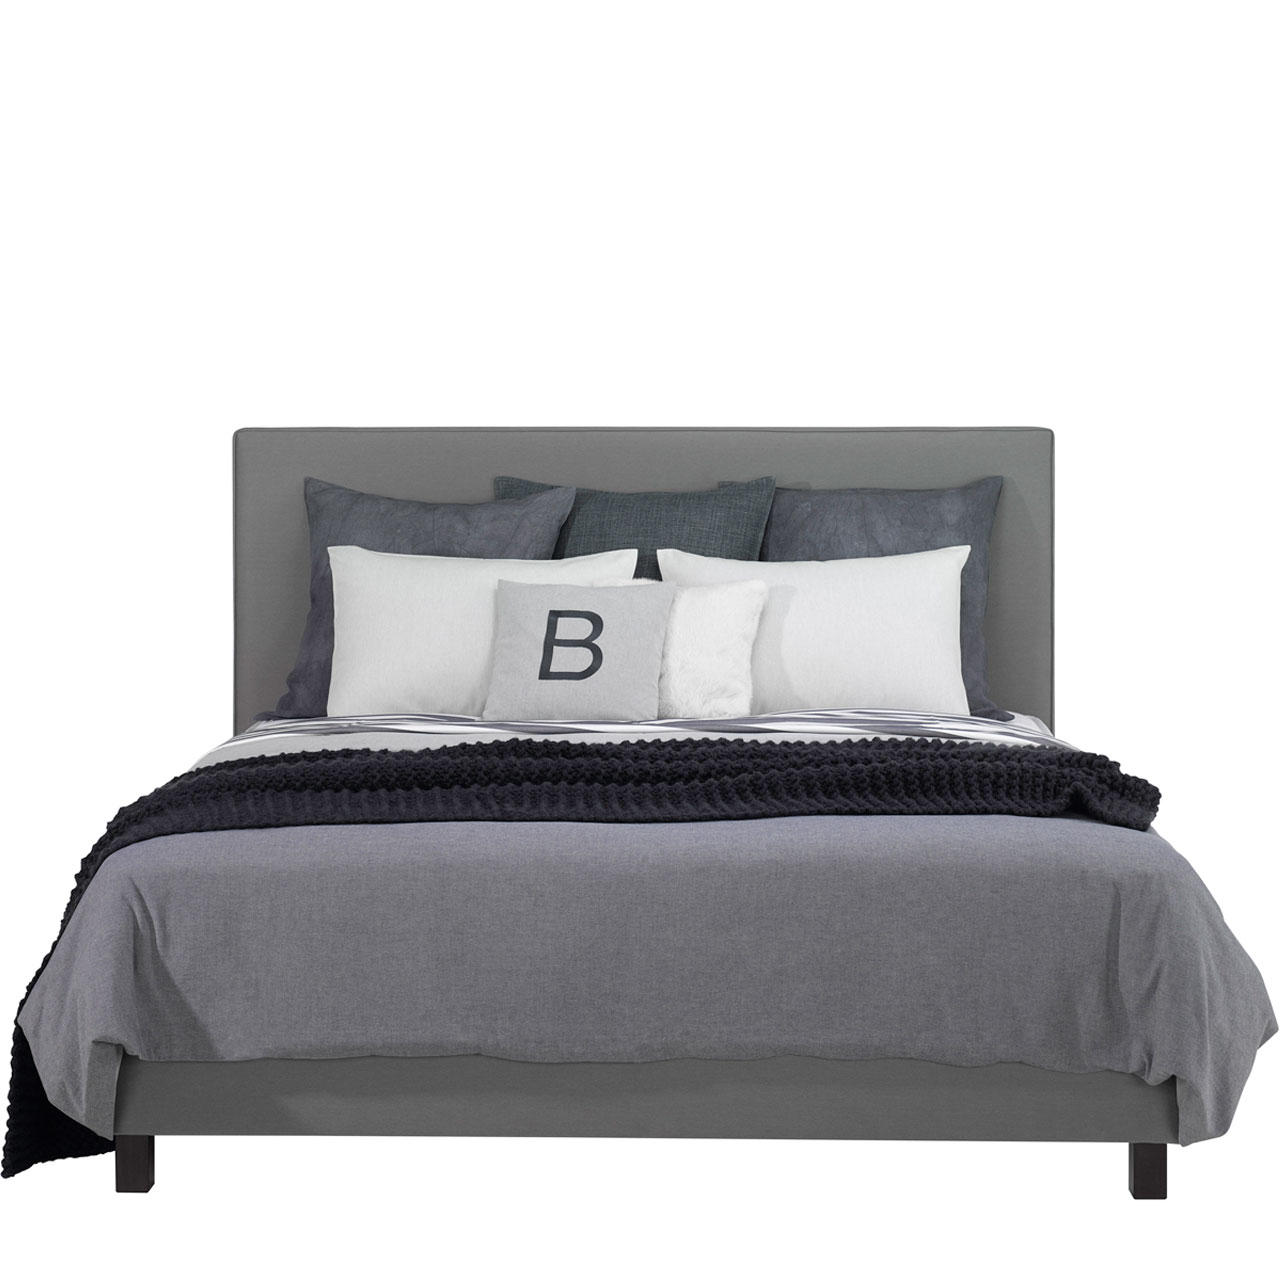 "TRECA PARIS - Boxspringbett ""24Seven - Like"""